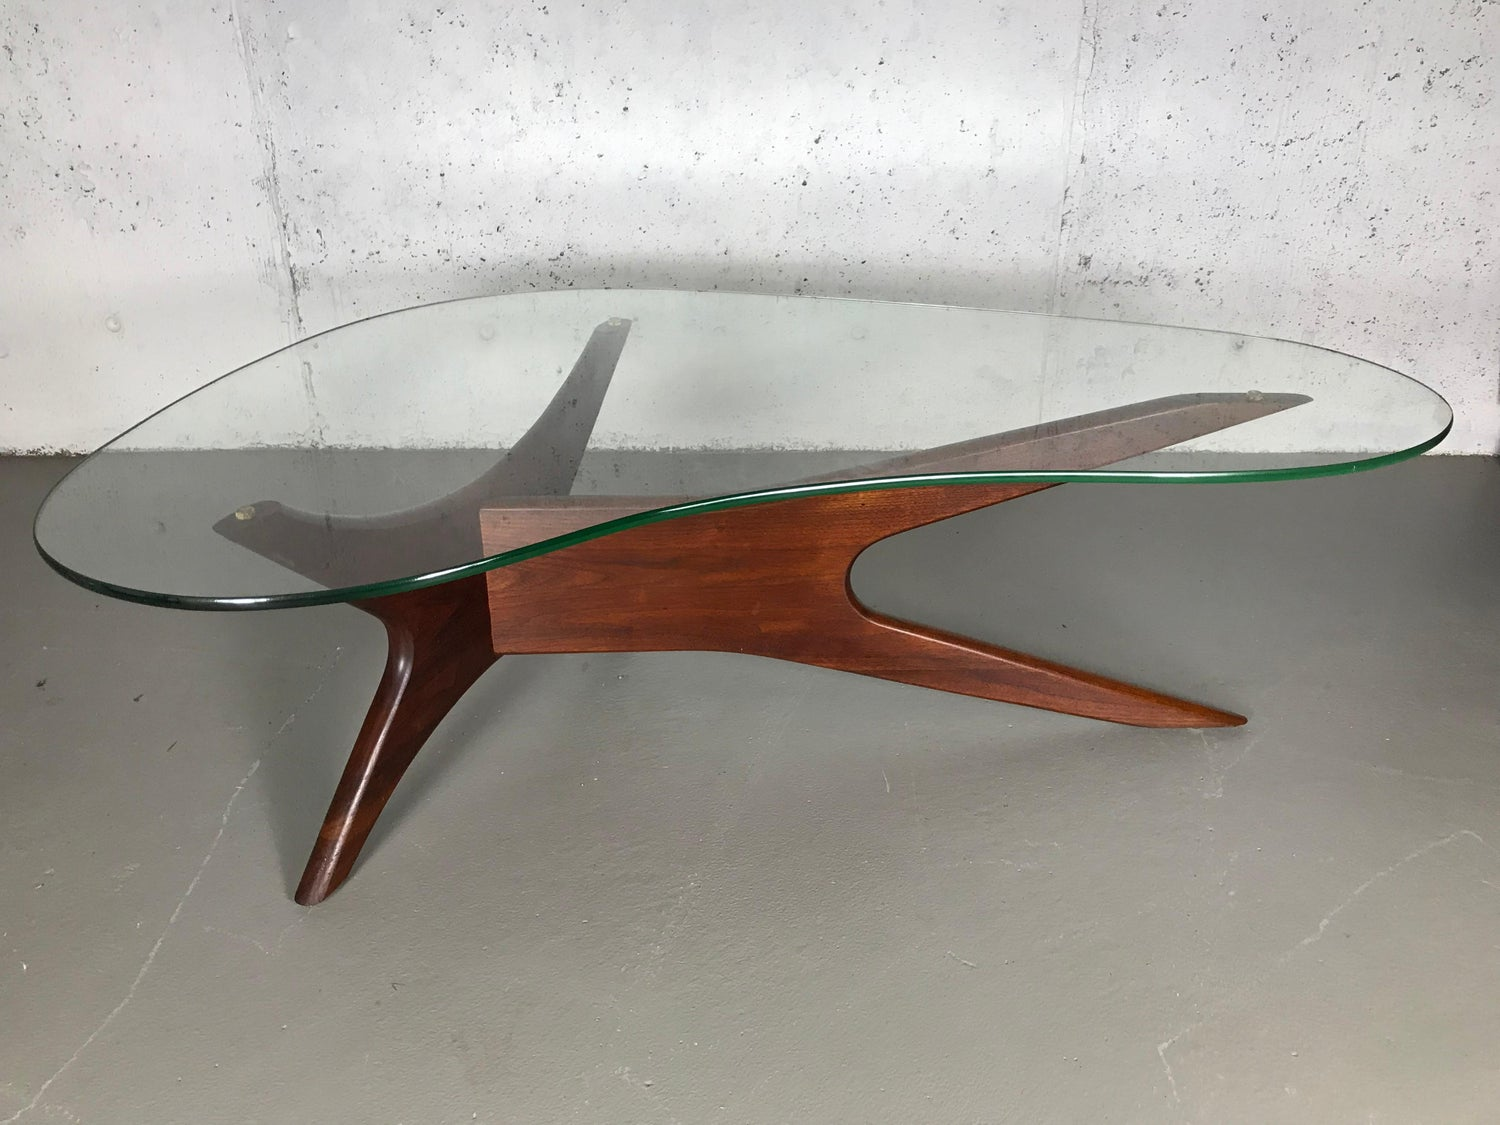 Tremendous Sculptural Walnut And Glass Cocktail Table By Adrian Ncnpc Chair Design For Home Ncnpcorg